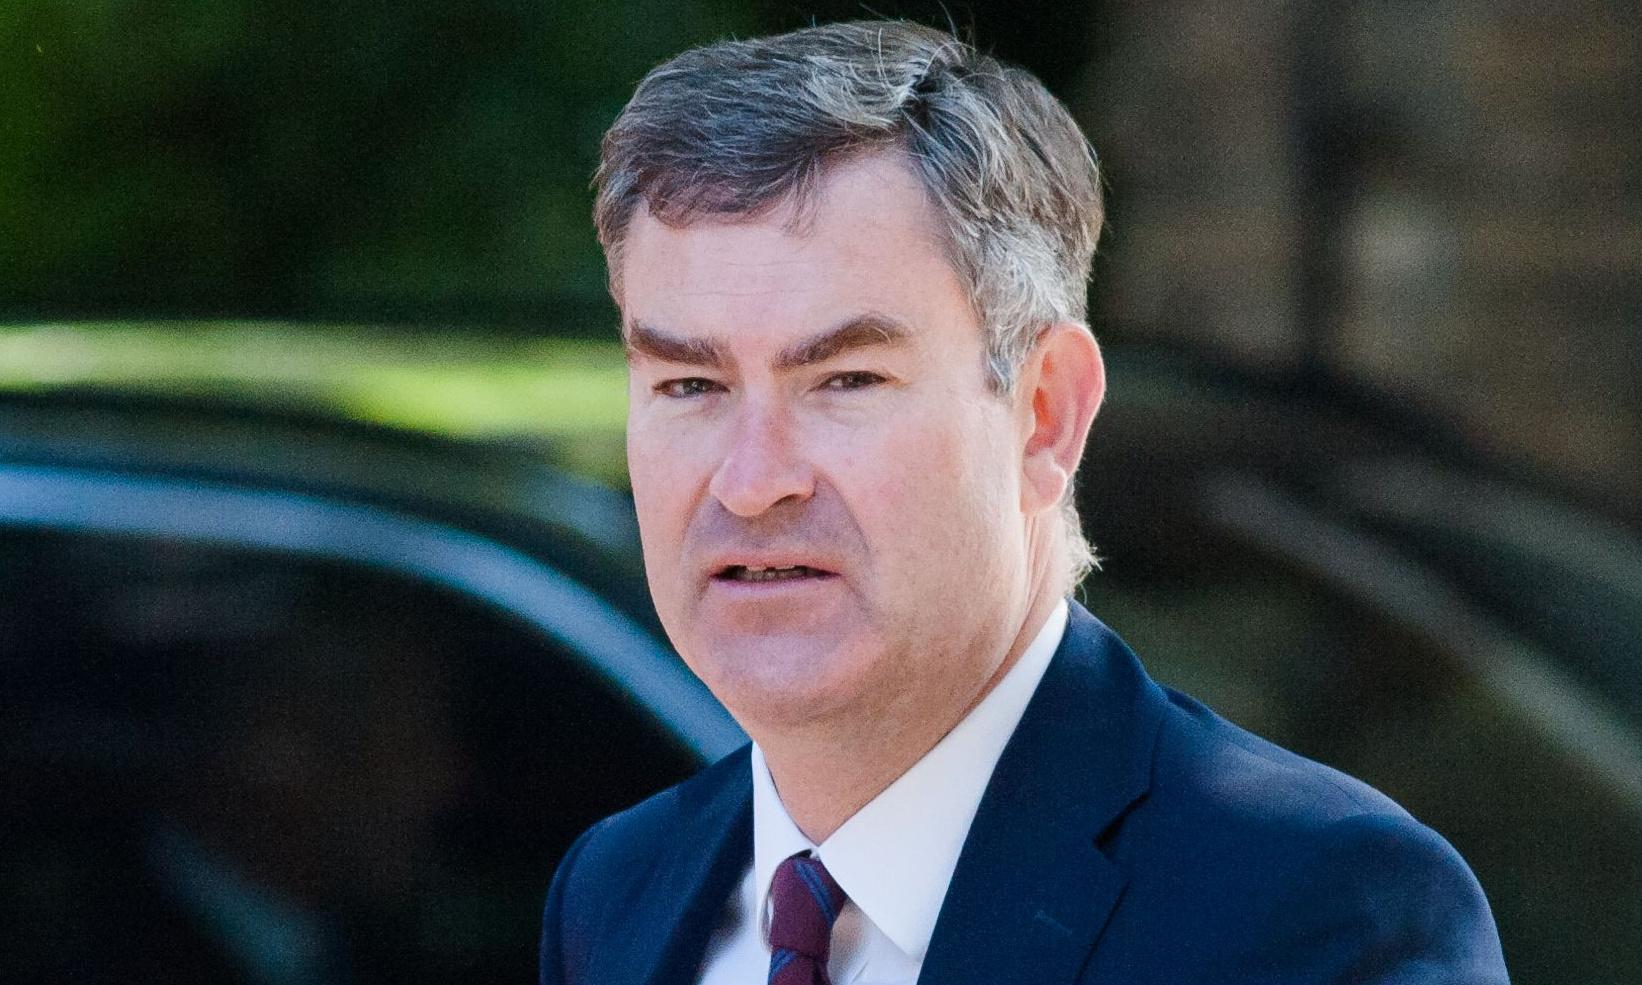 David Gauke to quit government if Boris Johnson becomes PM